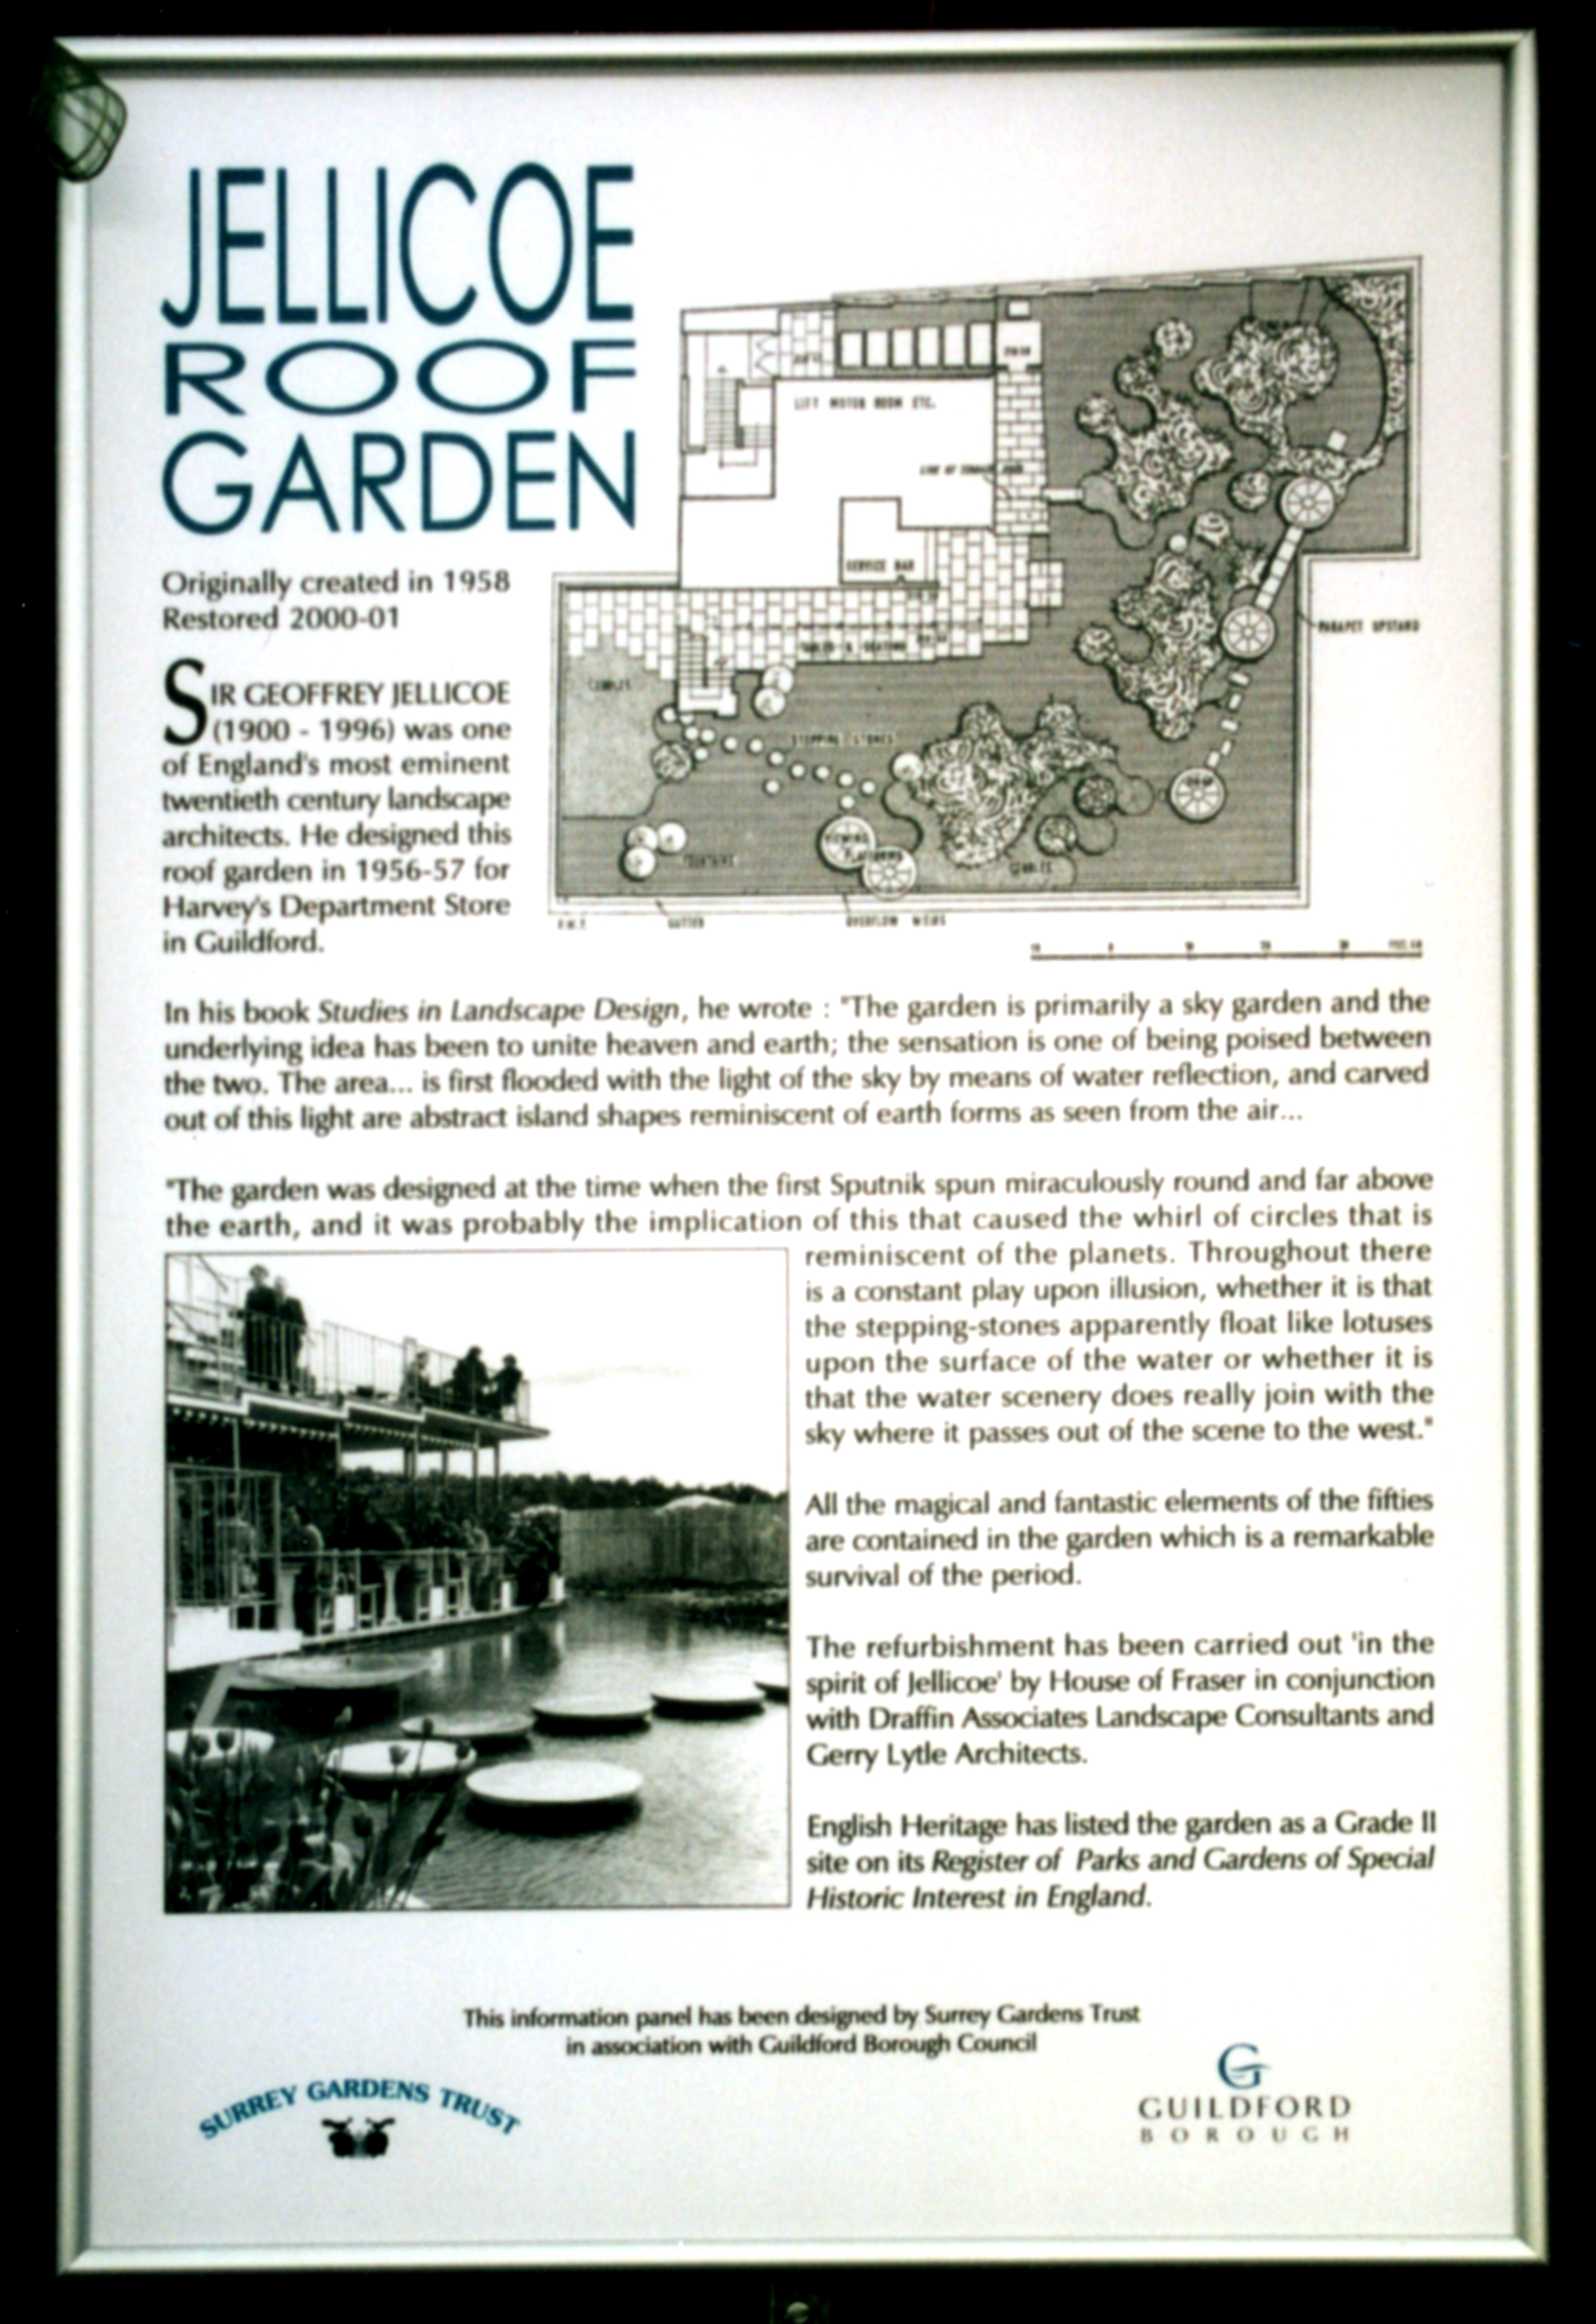 Information board prepared by Surrey Gardens Trust in association with Guildford Borough Council 2003